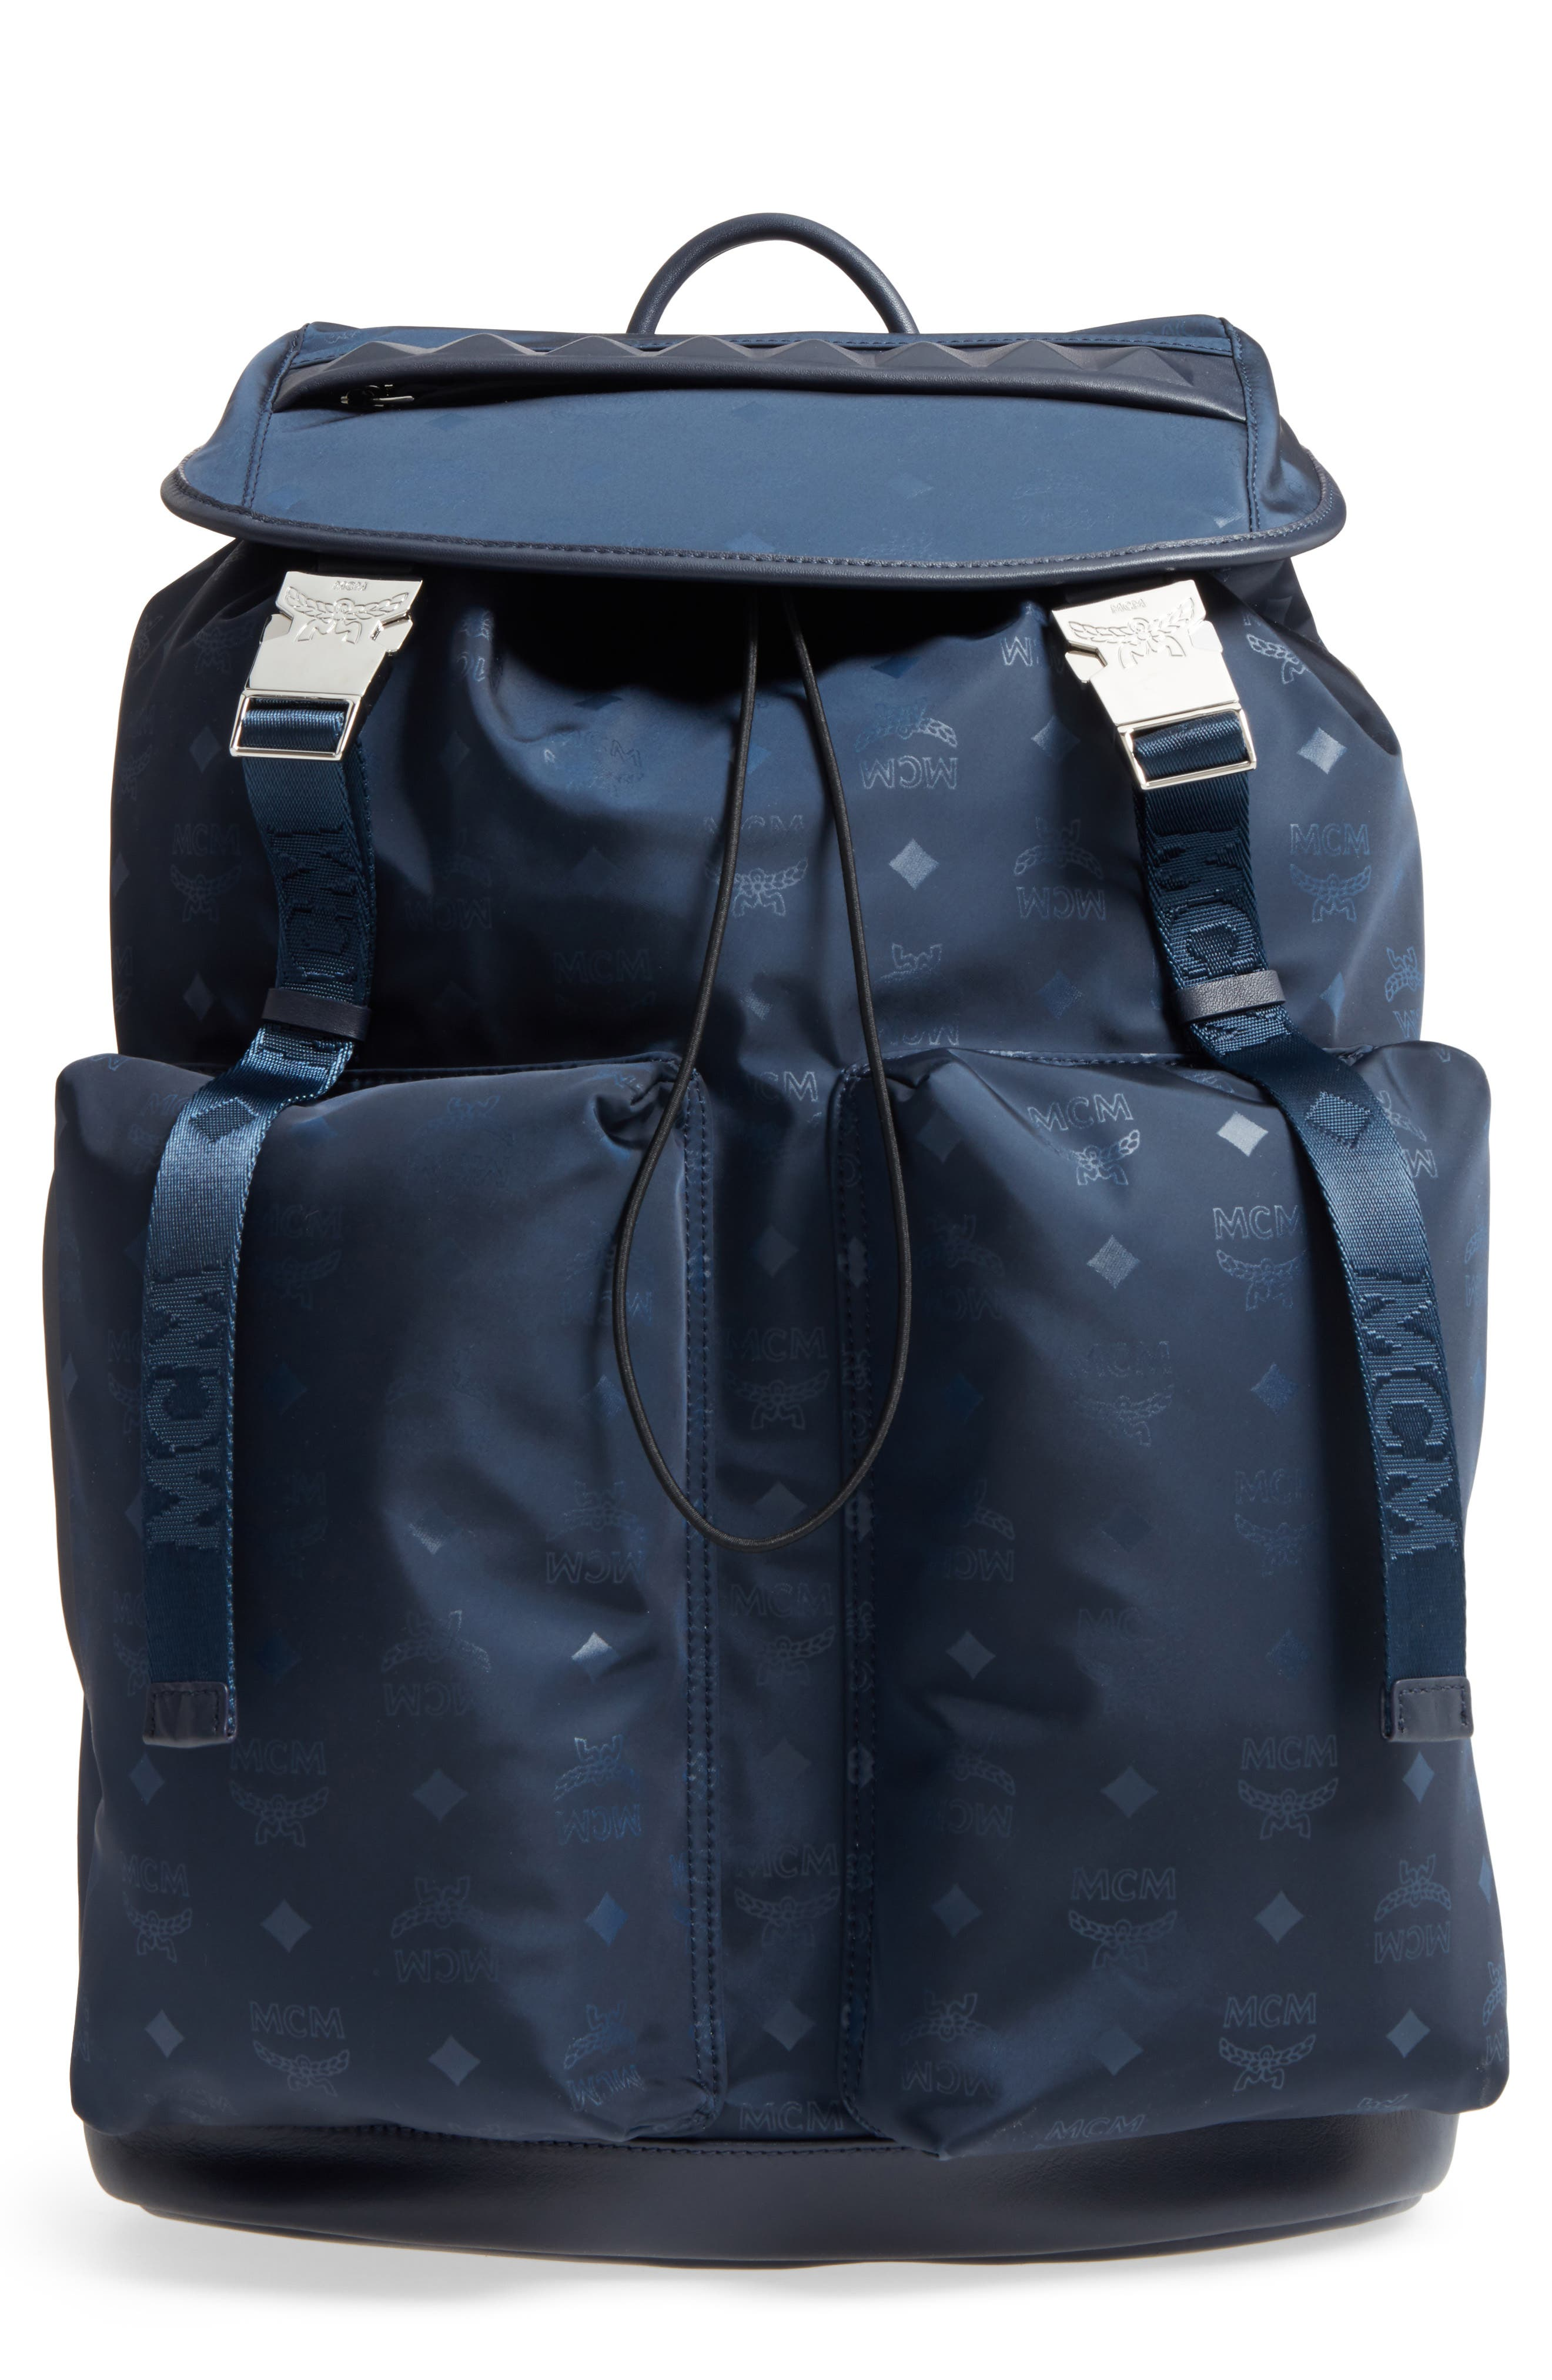 Dieter Backpack,                             Main thumbnail 1, color,                             Navy Blue